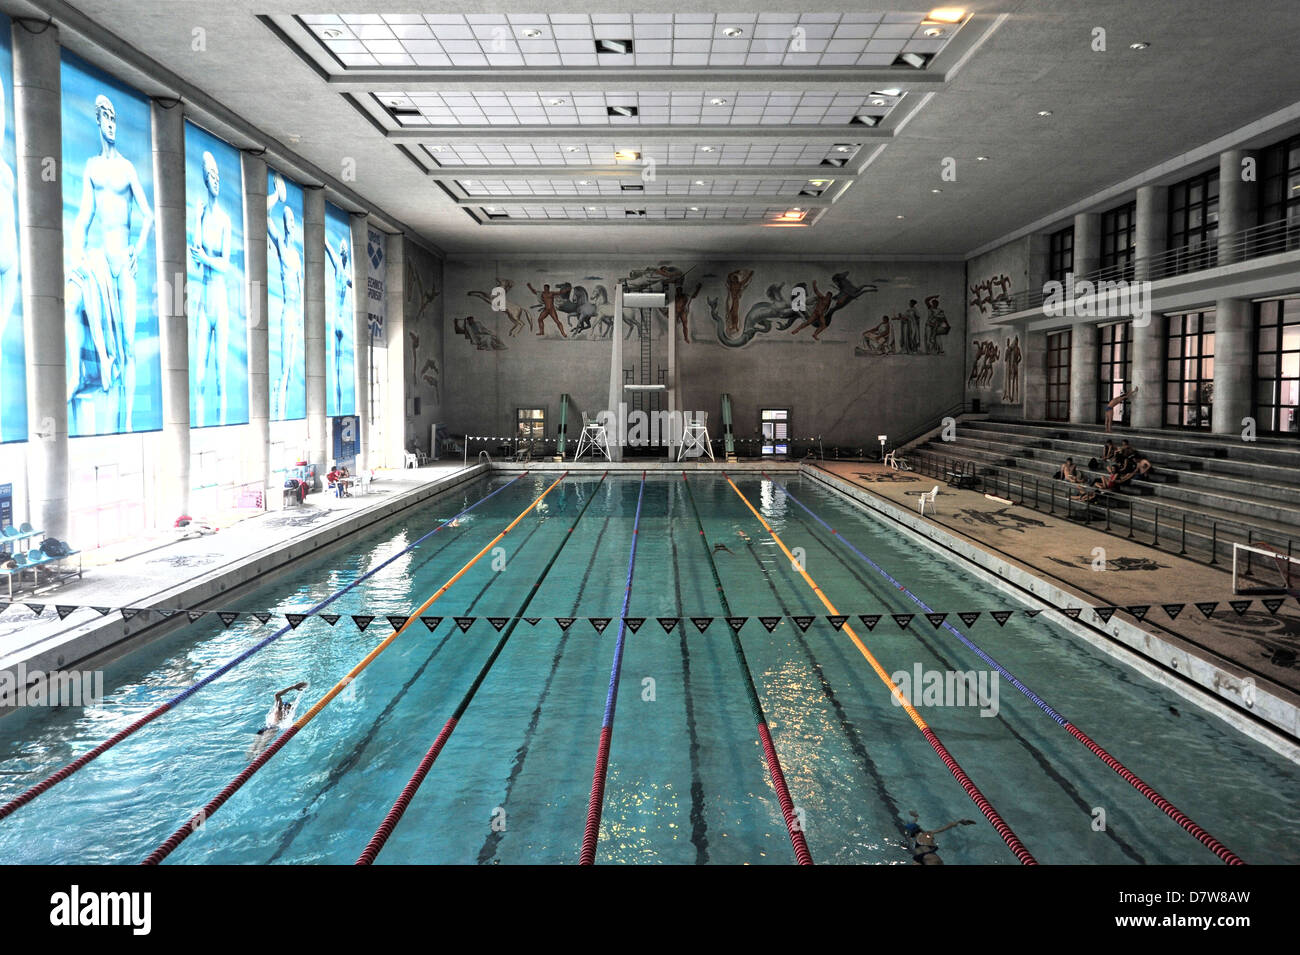 The covered swimming pool built by Mussolini during fascism ...